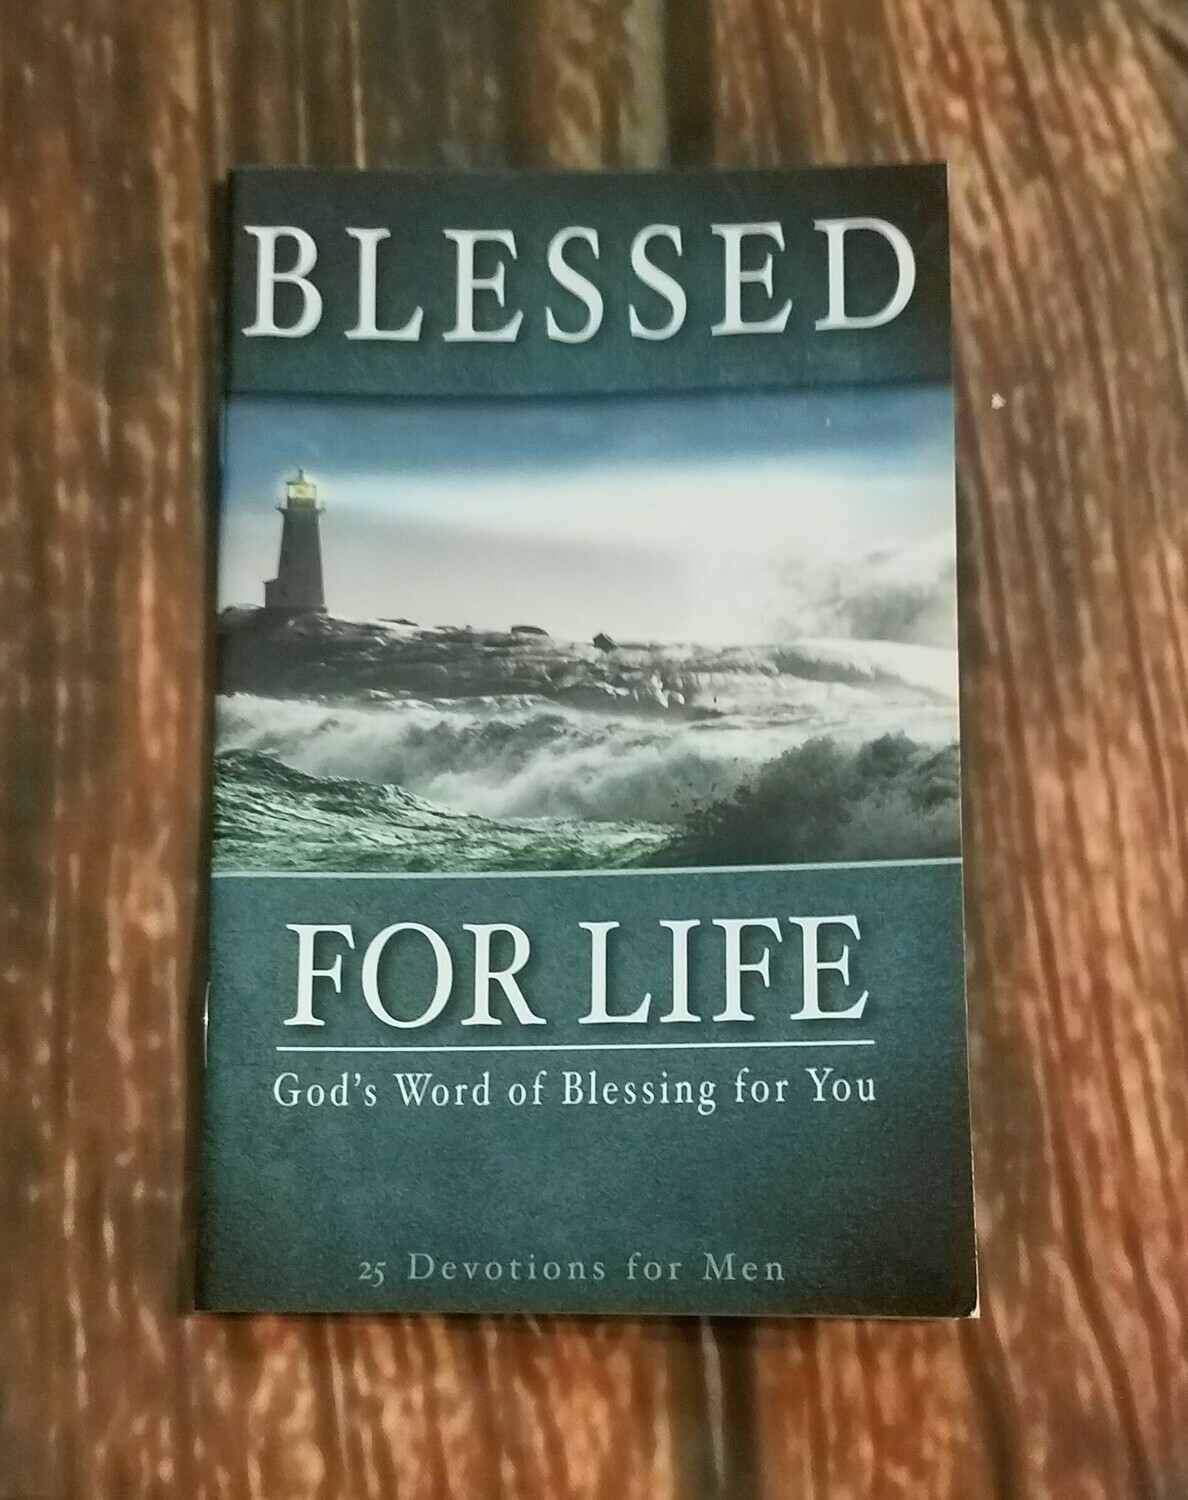 Blessed For Life by David R. Schmitt